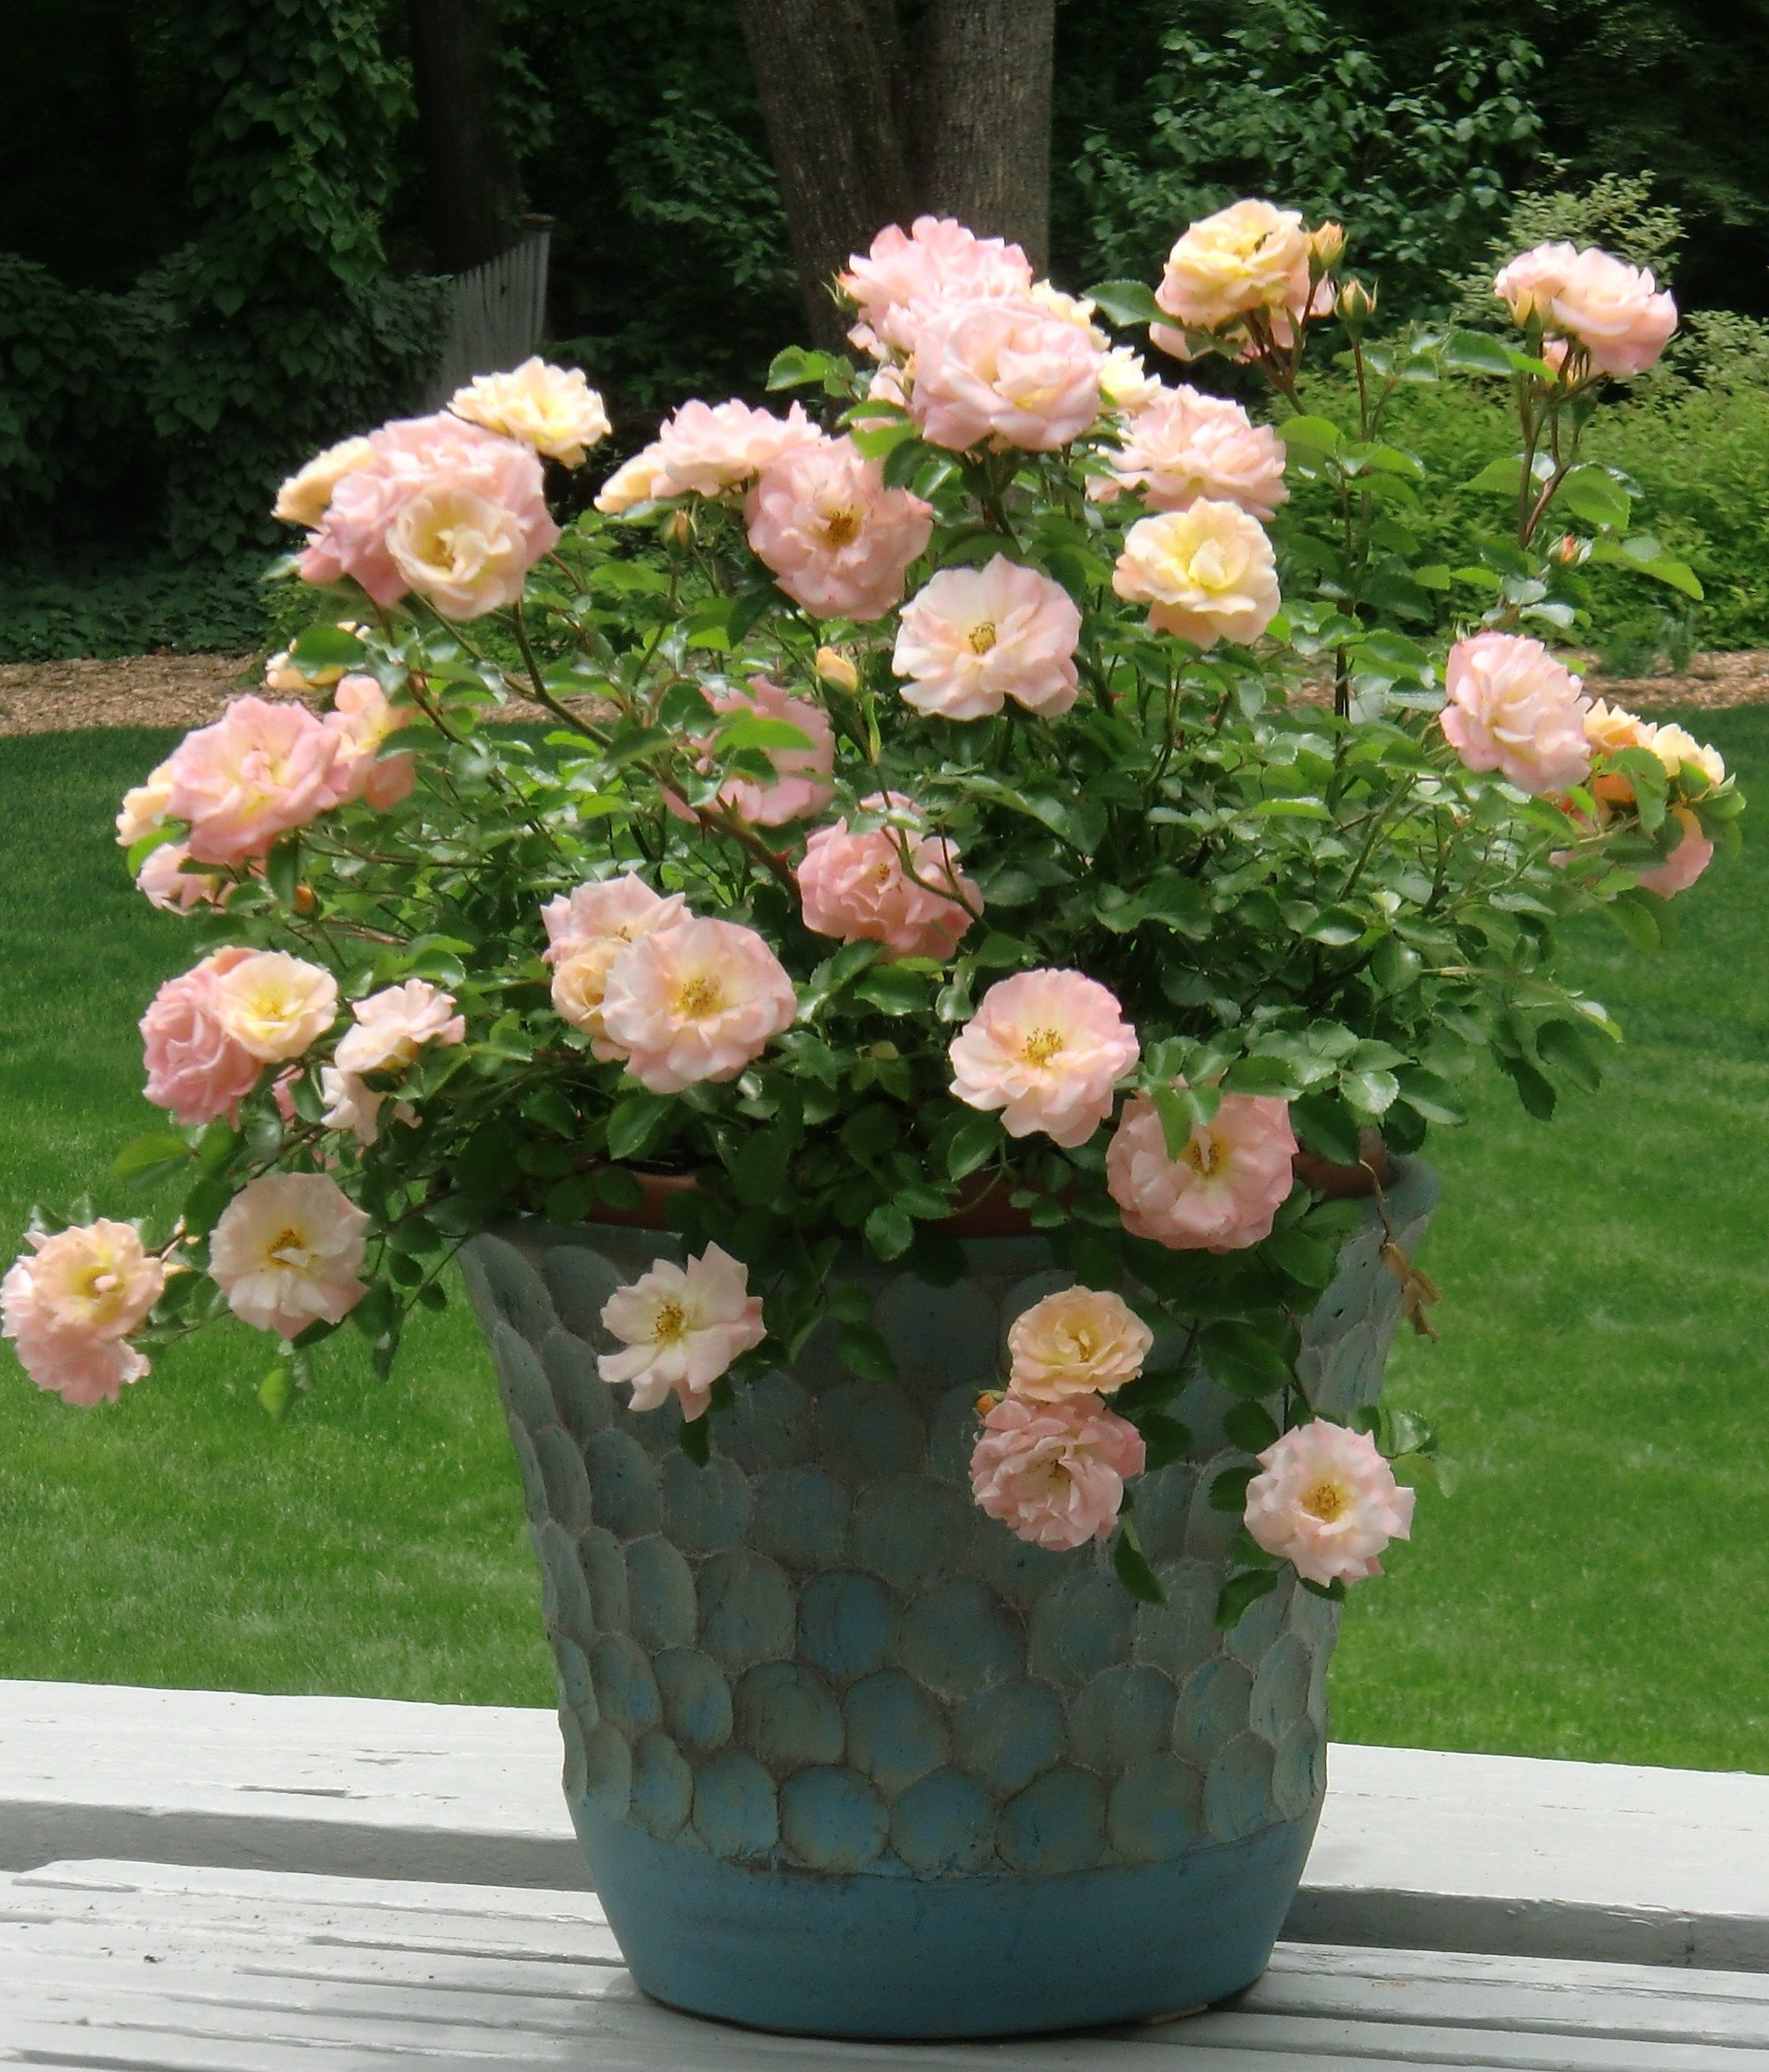 Roses In Garden: Just Making Thyme For This Garden Of